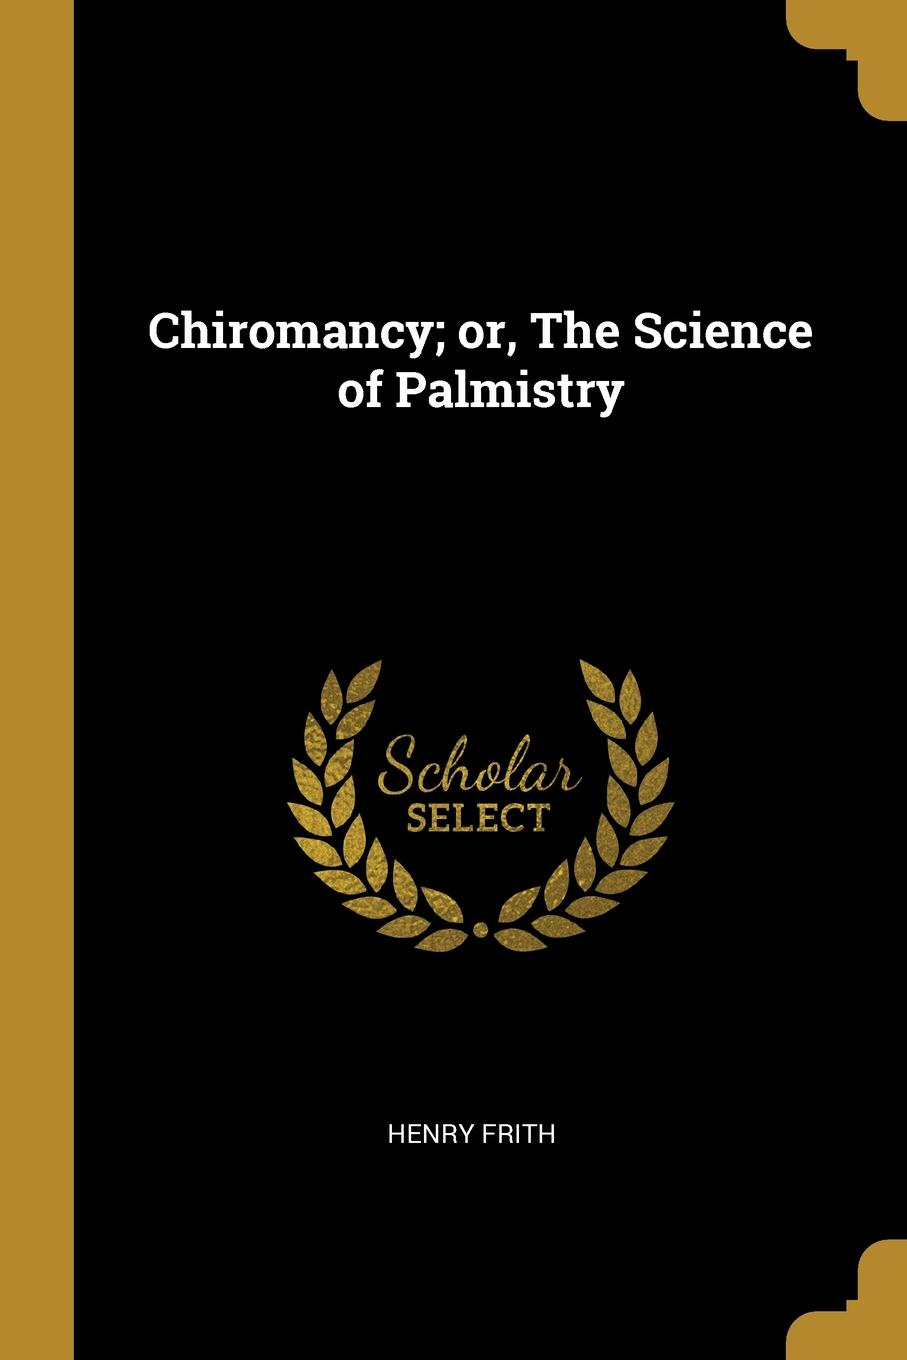 Фото - Henry Frith Chiromancy; or, The Science of Palmistry h frith e heron allen dora noyes chiromancy or the science of palmistry